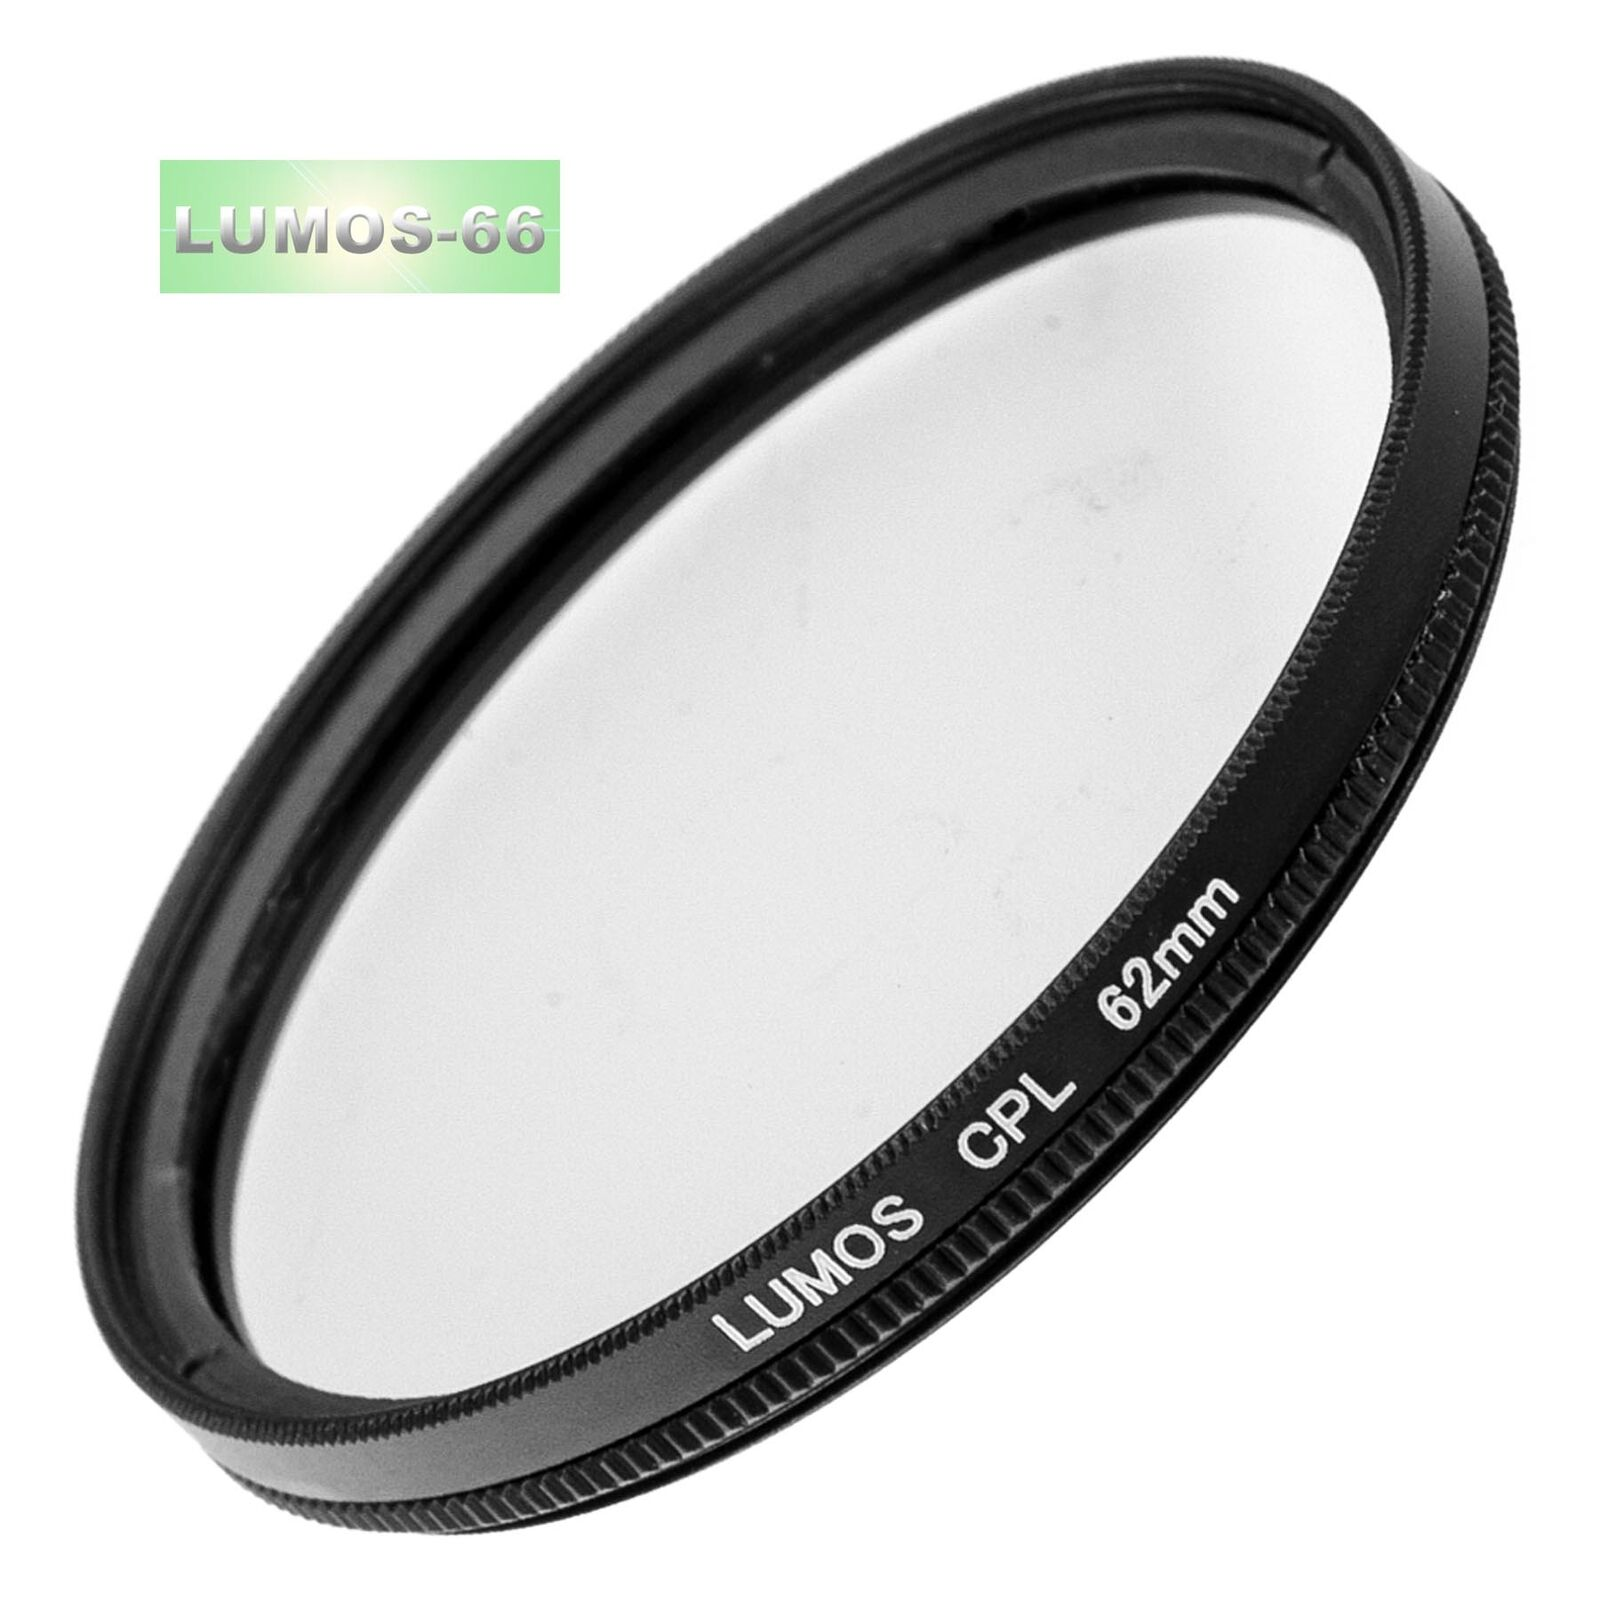 Polfilter Ø 62mm LUMOS cpl Pol Filter Kamera Objektiv Polarisationsfilter 62 mm